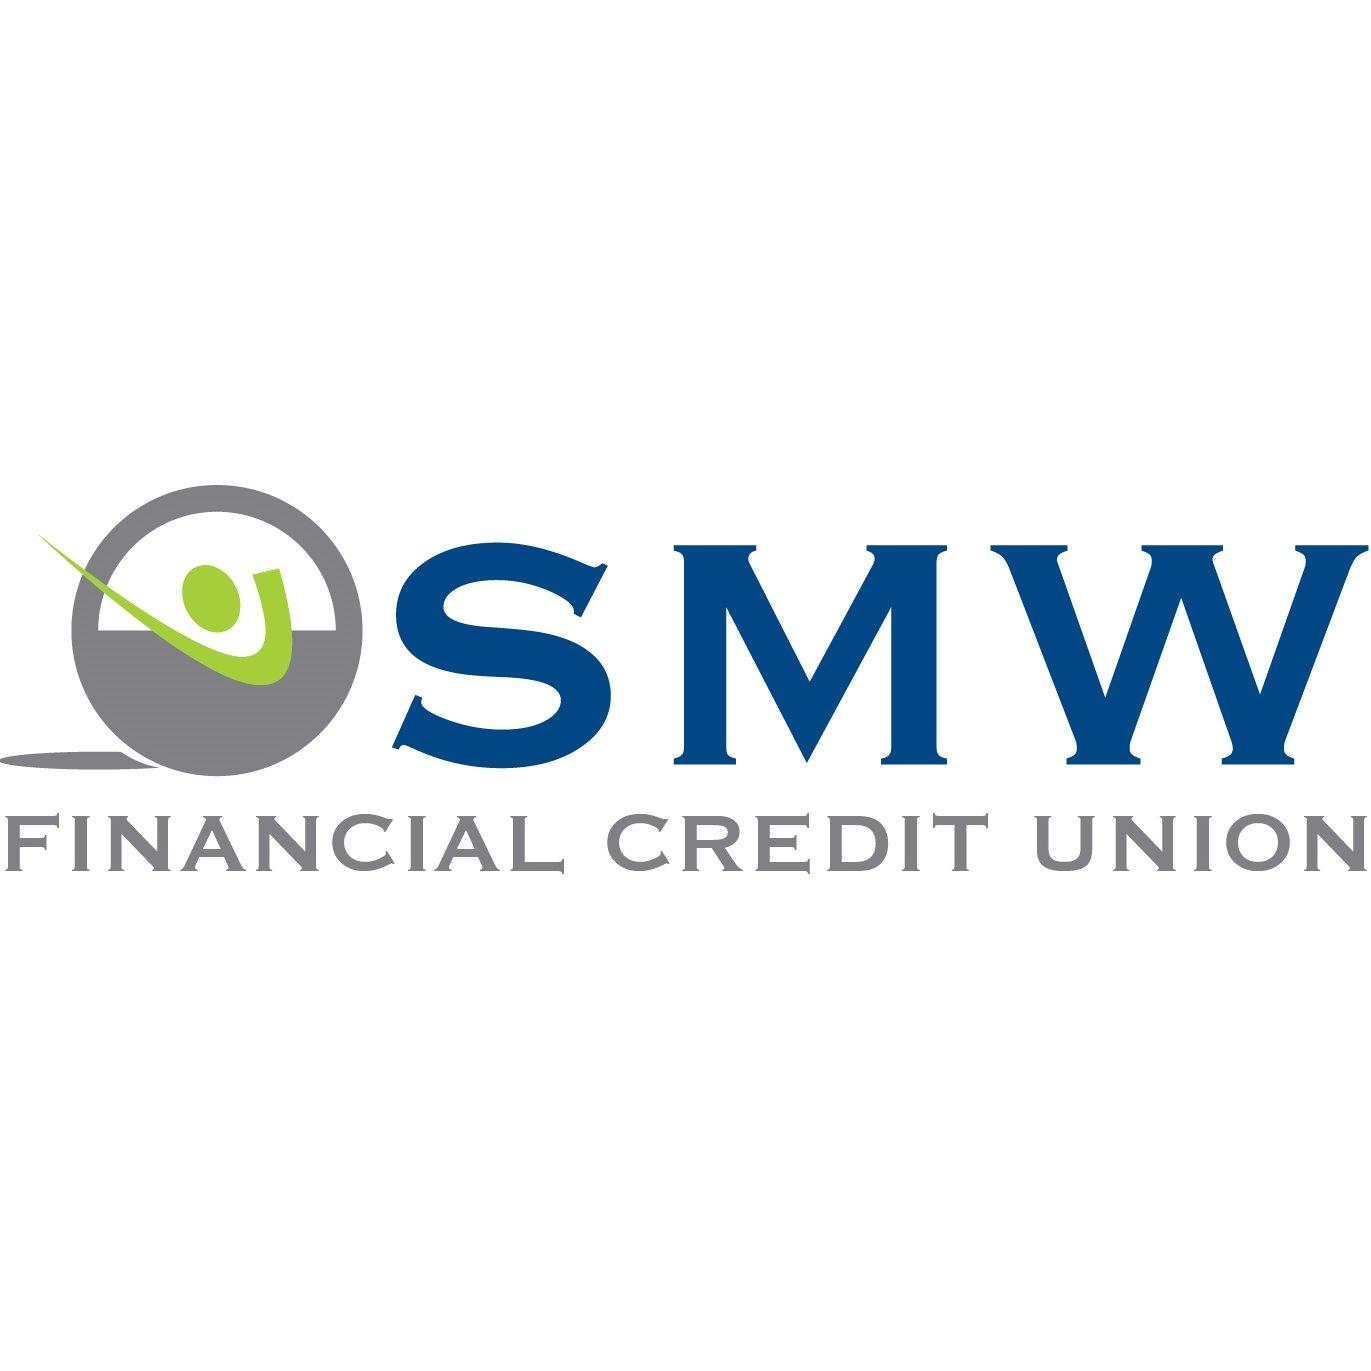 SMW Financial Credit Union - Lino Lakes, MN 55014 - (651)747-1500 | ShowMeLocal.com